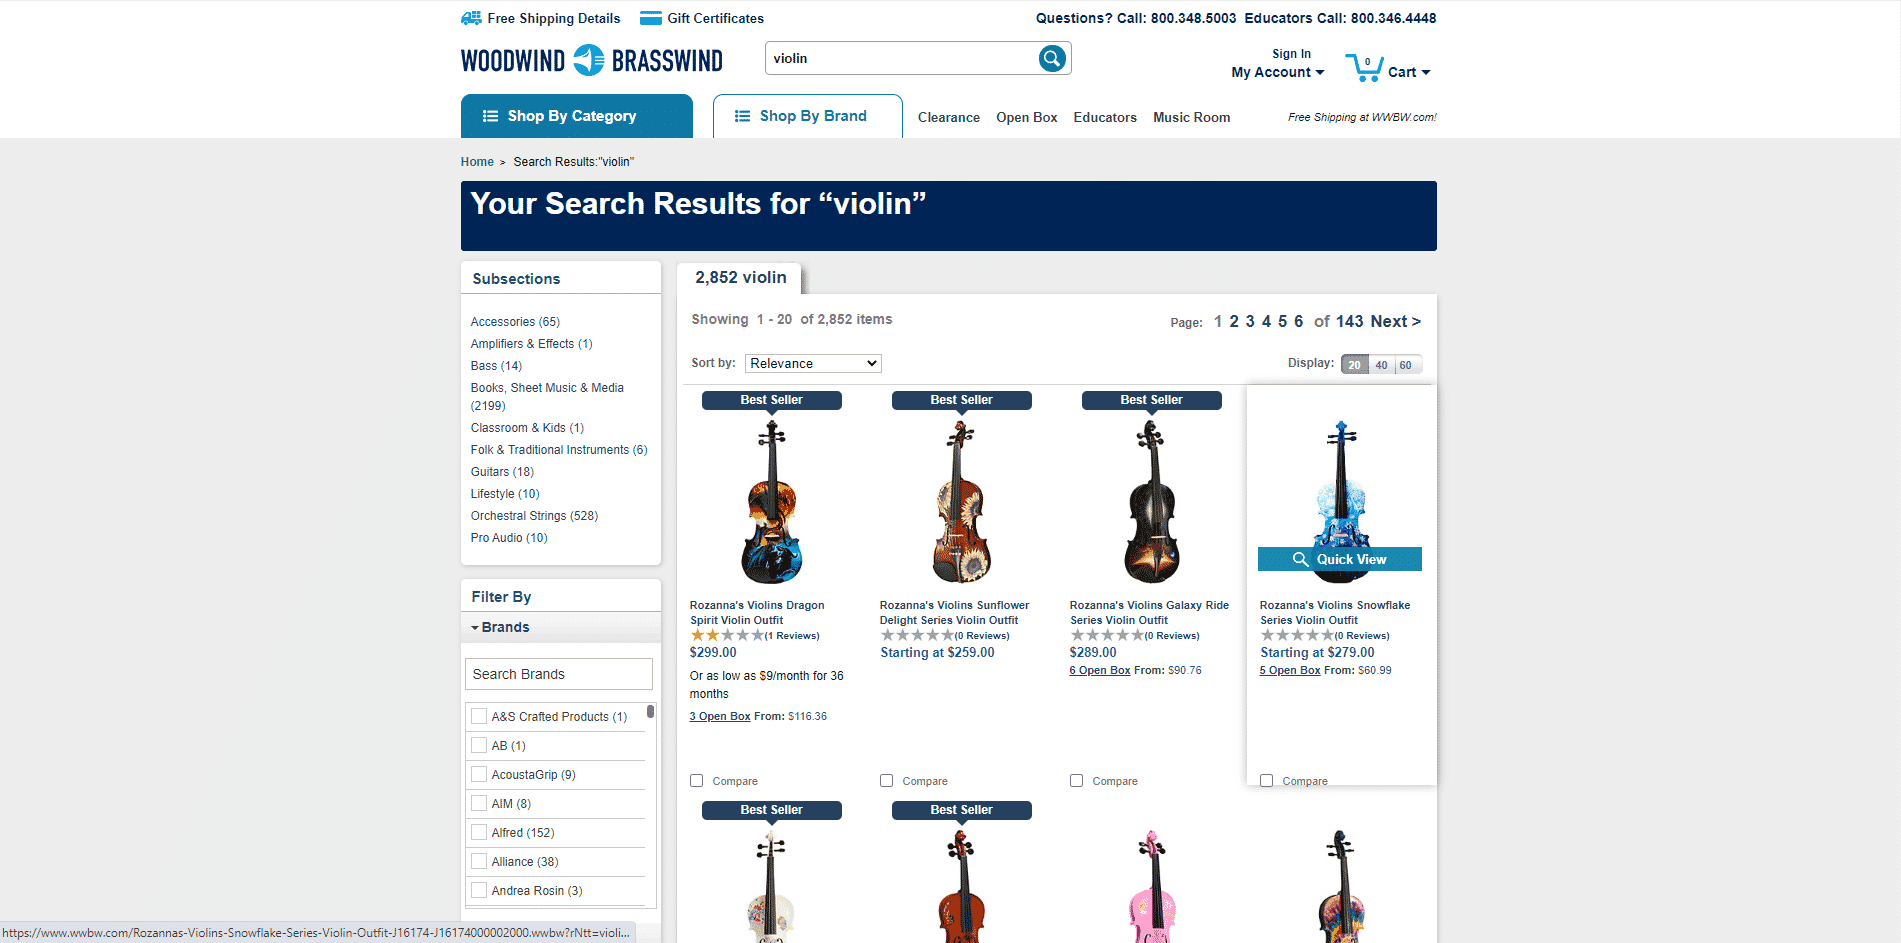 Woodwind Brasswind buy violin online